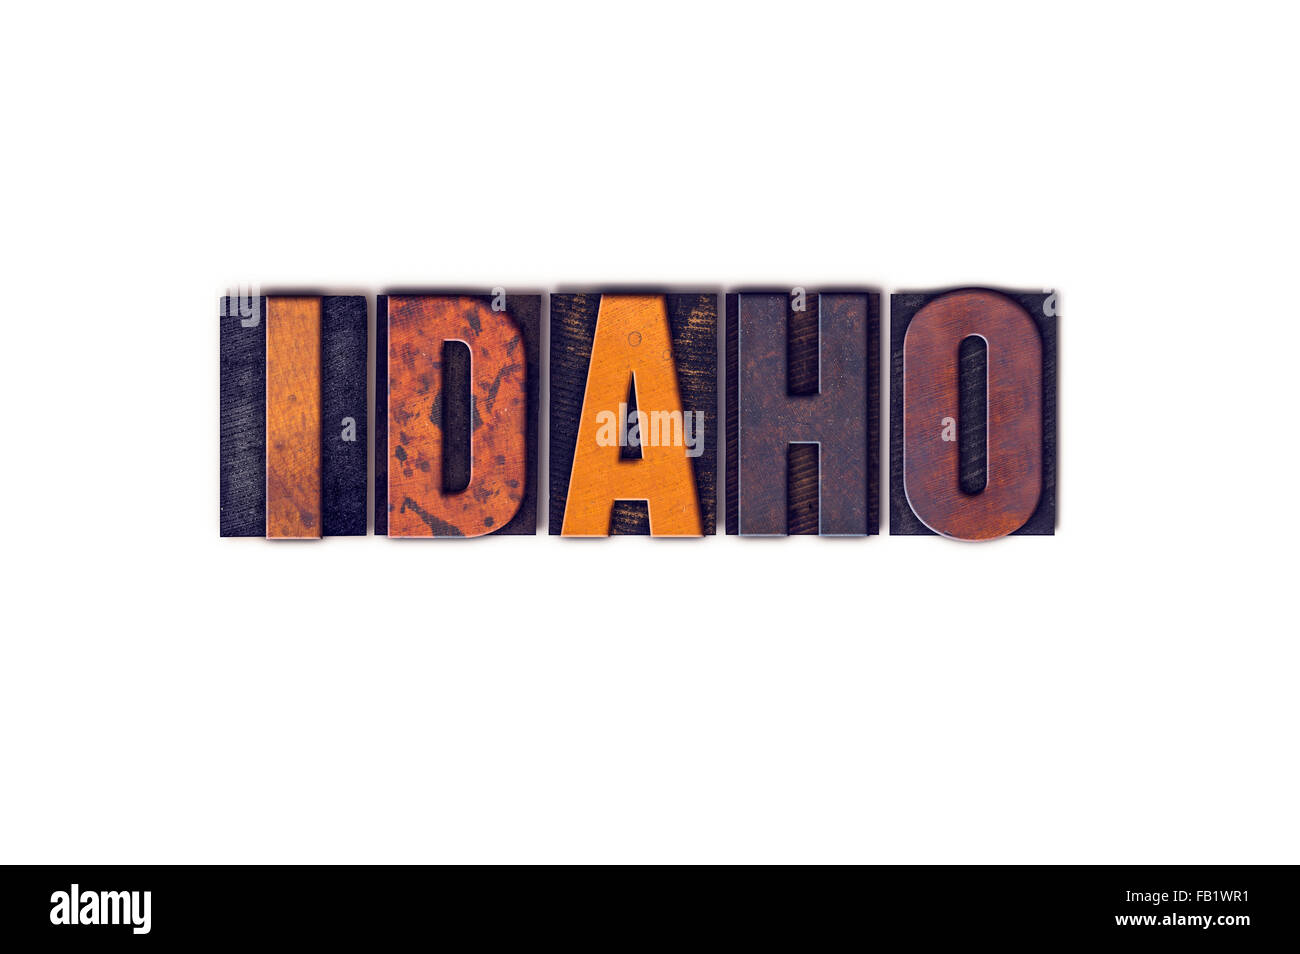 The word 'Idaho' written in isolated vintage wooden letterpress type on a white background. - Stock Image